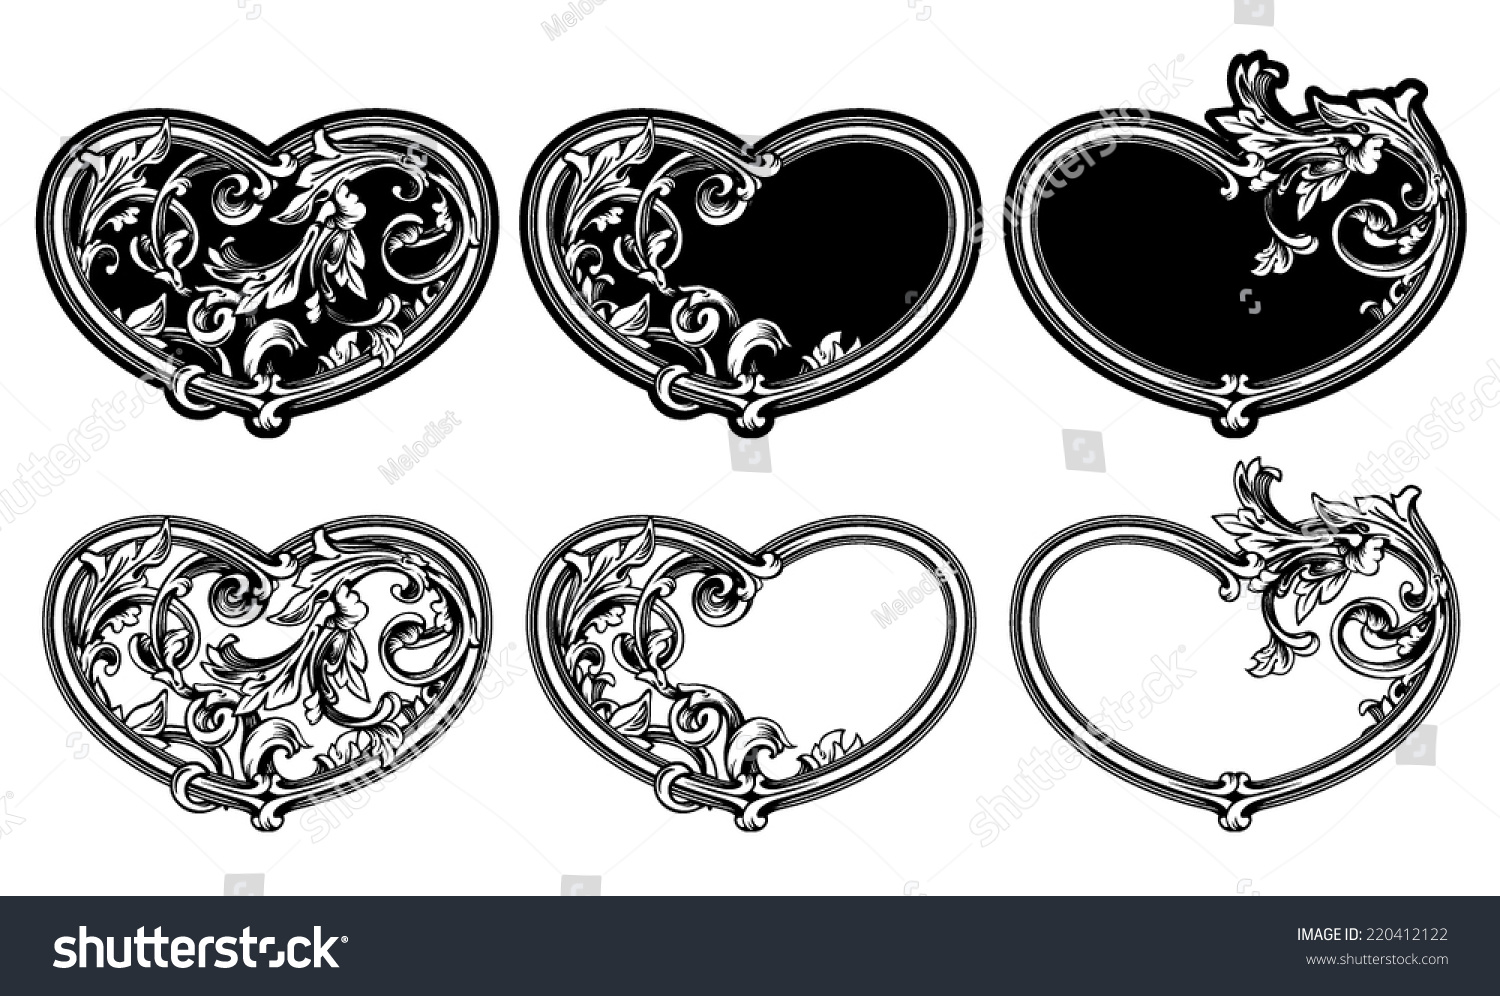 Valentines Day Vector Floral Heart Frames Stock Vector (Royalty Free ...